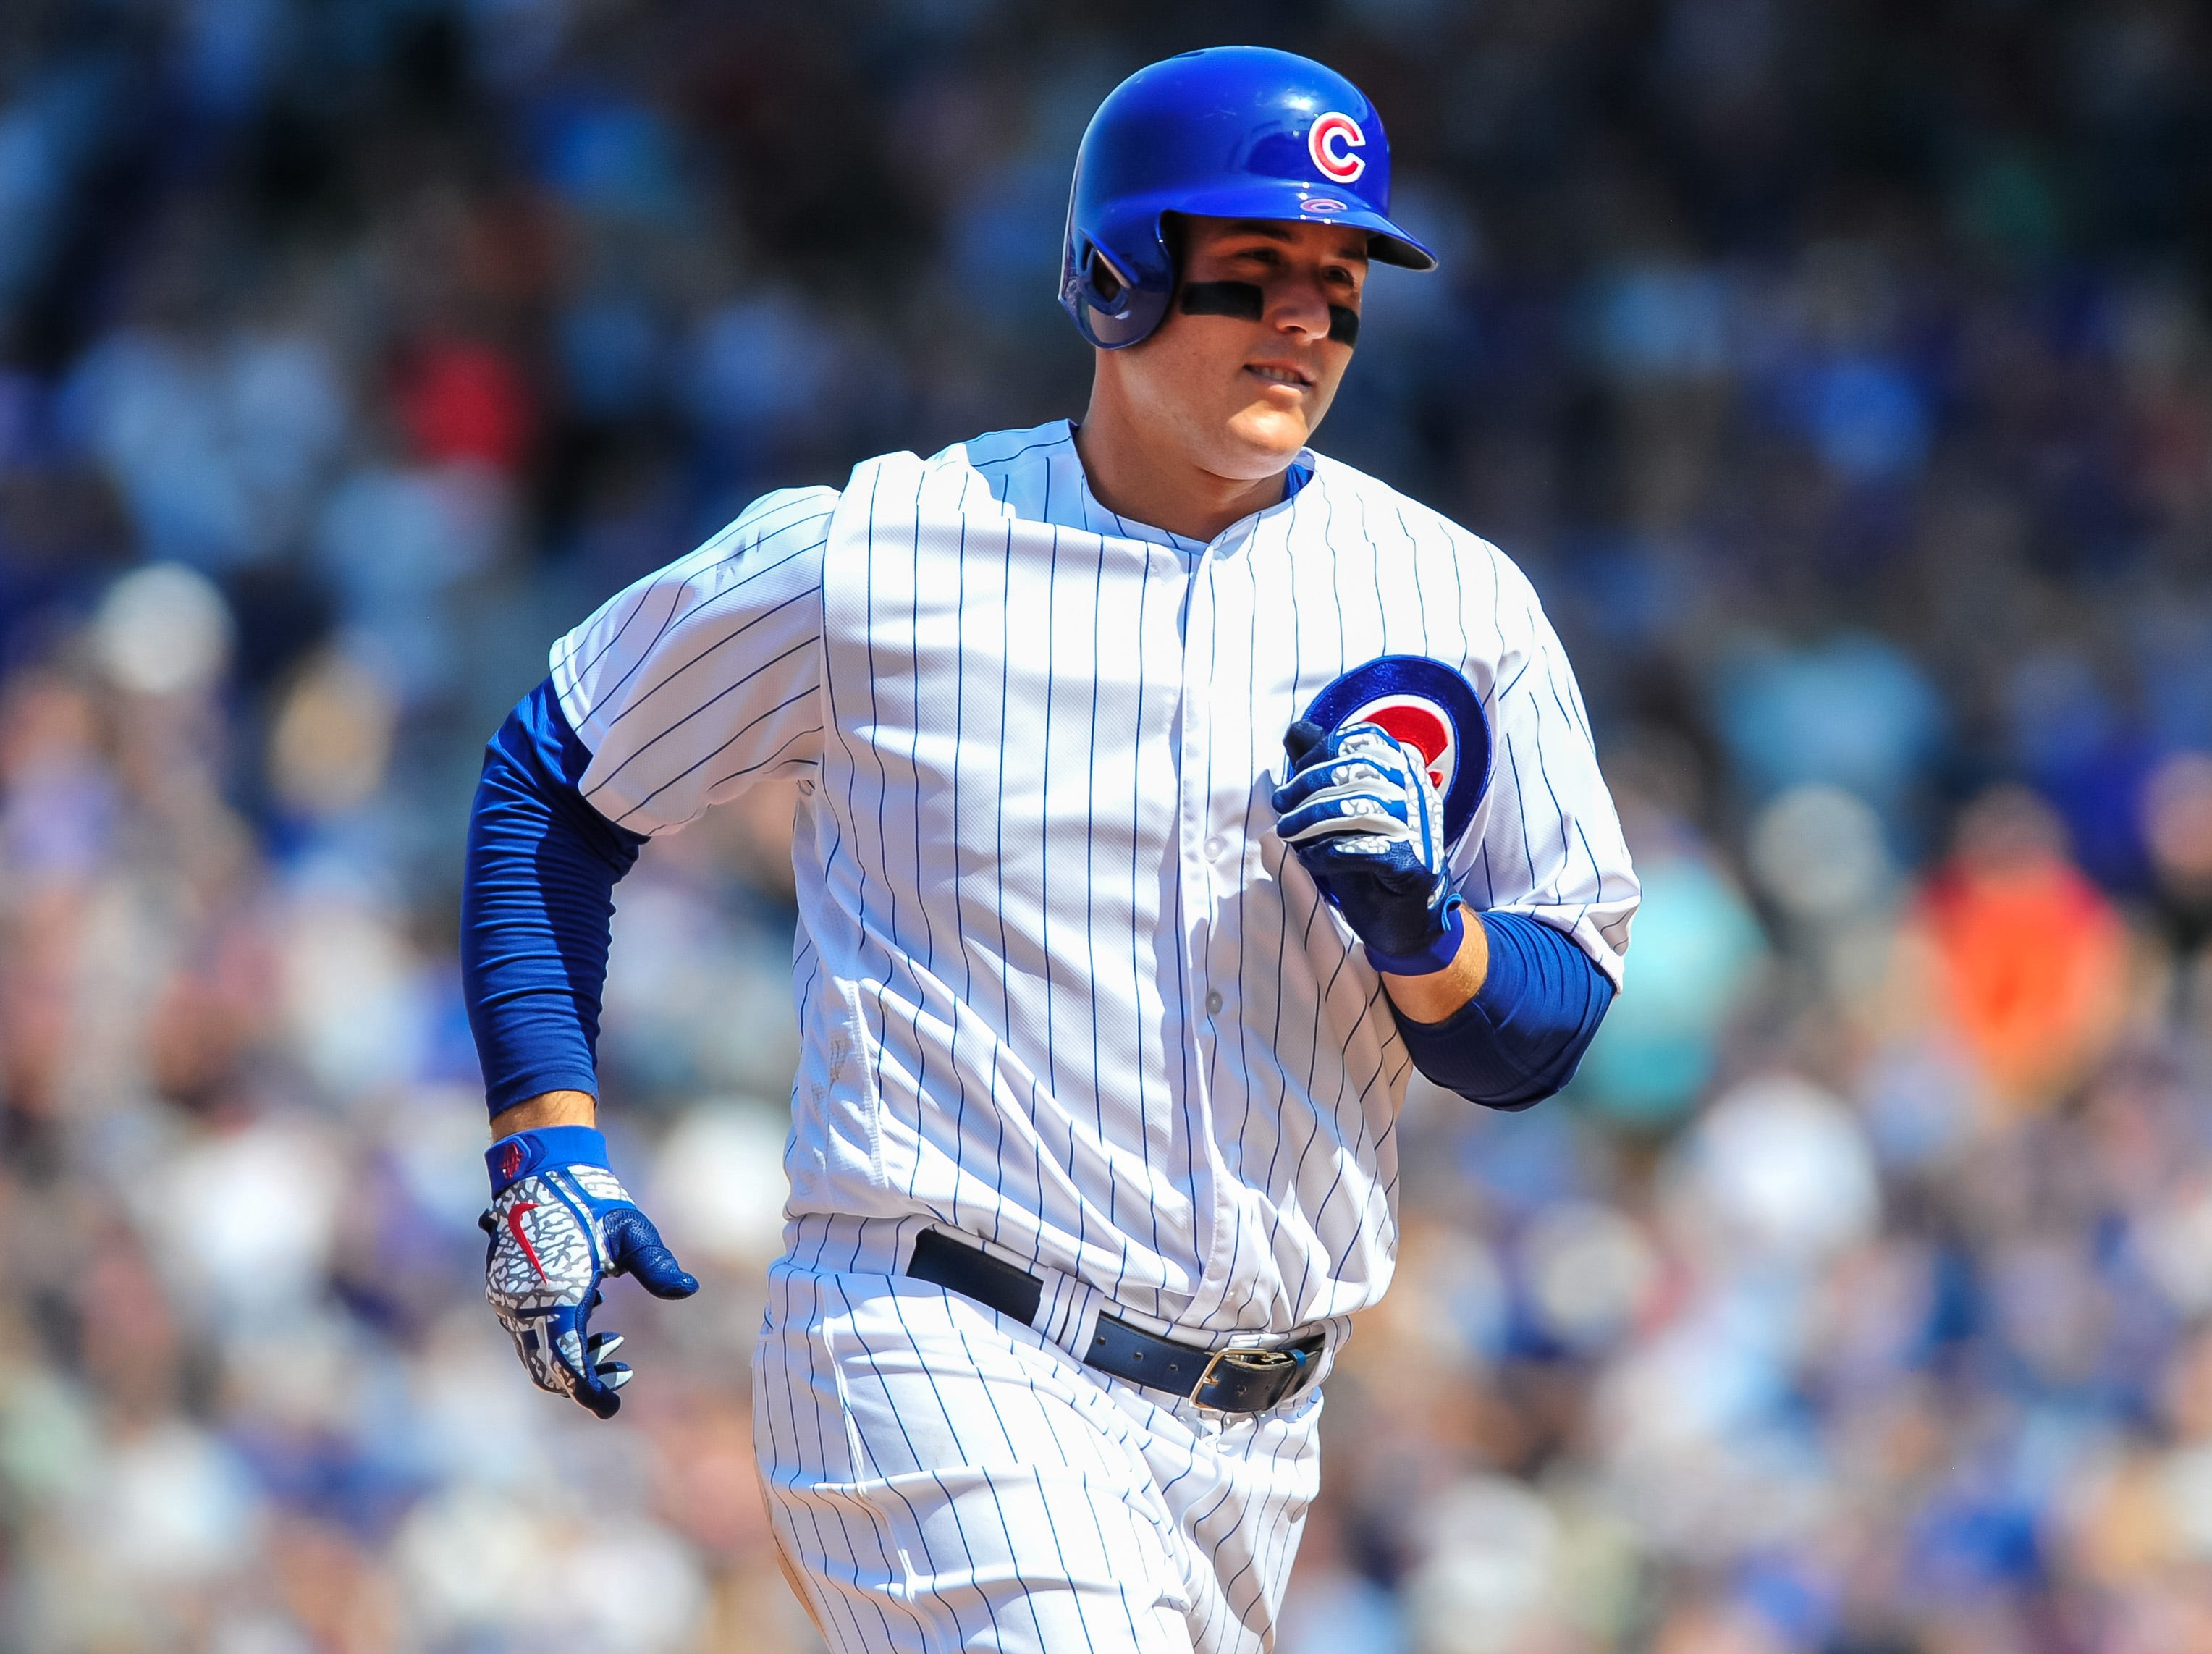 32. Anthony Rizzo, Chicago Cubs first baseman.